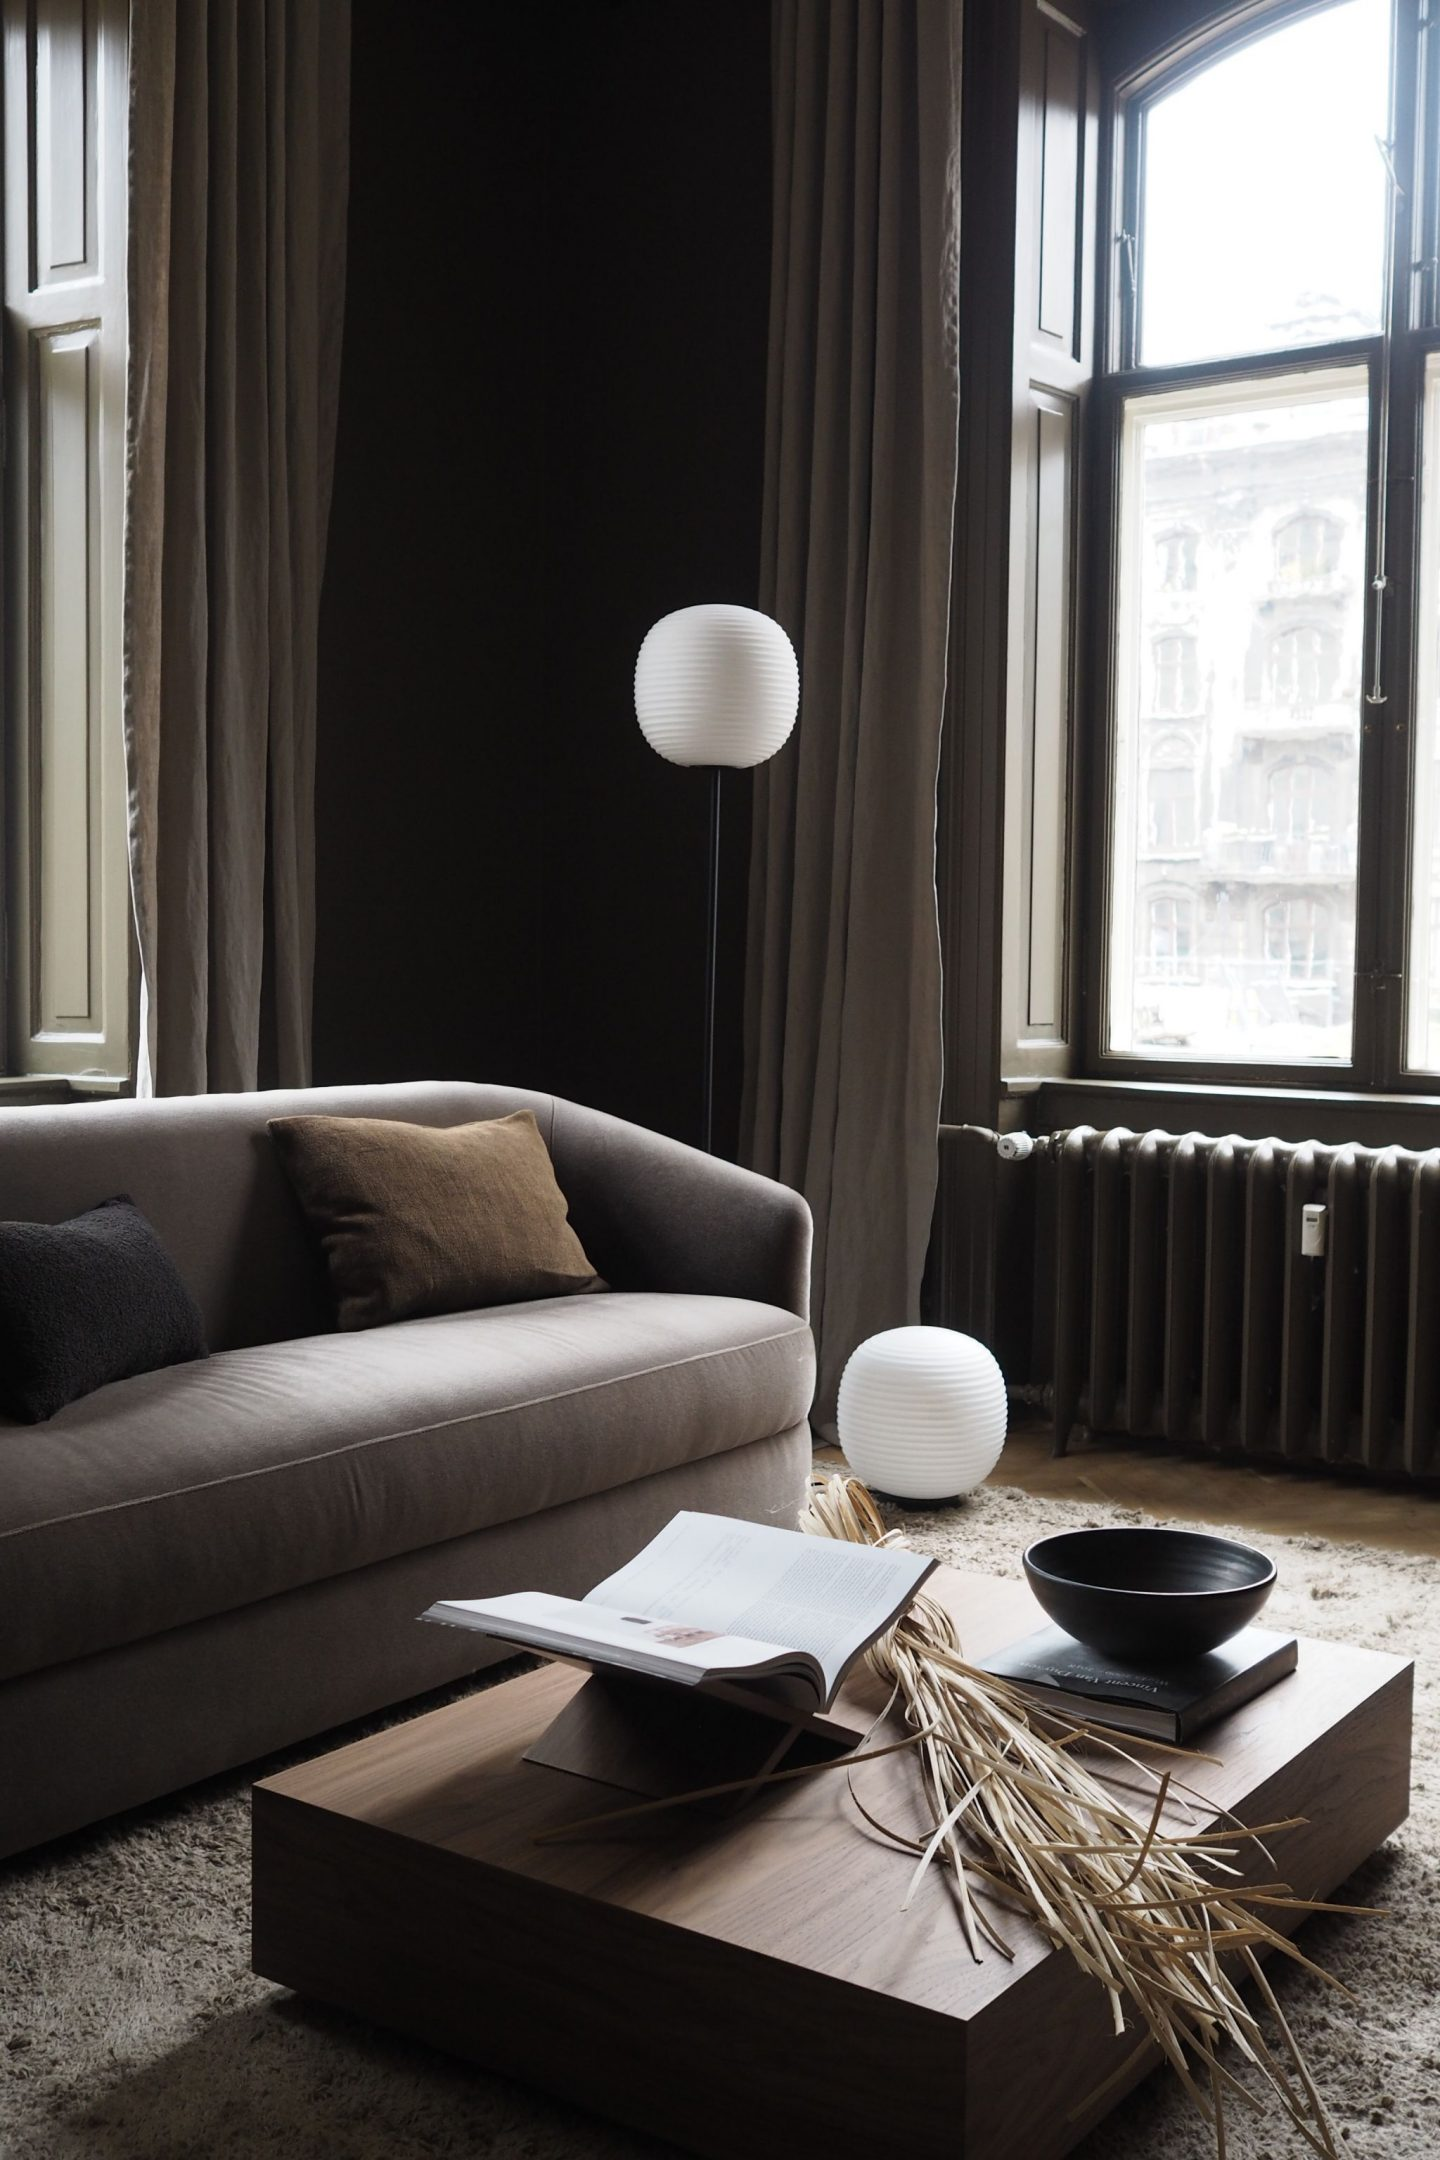 Copenhagen's 3 days of design event, New Works showroom, Lotta Agaton stylist, Hello Peagreen